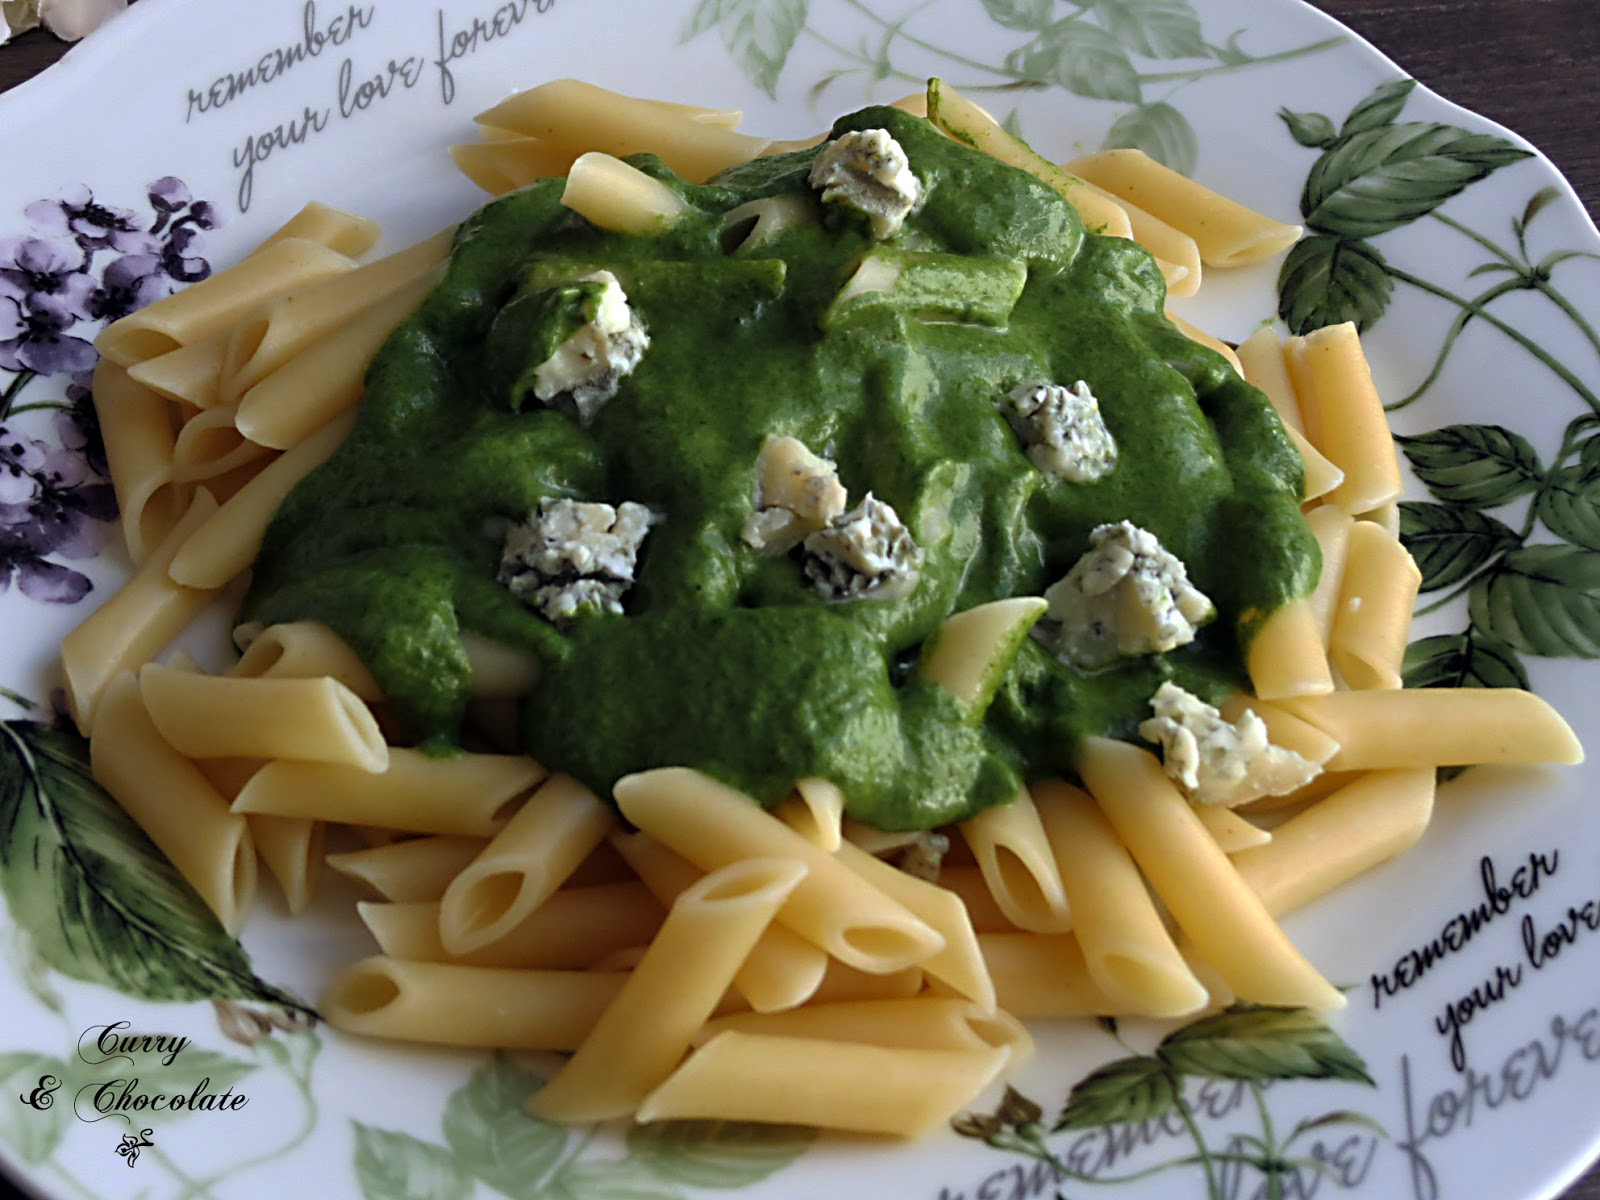 Pasta con crema de espinacas y queso gorgonzola – Pasta with spinach and gorgonzola cheese